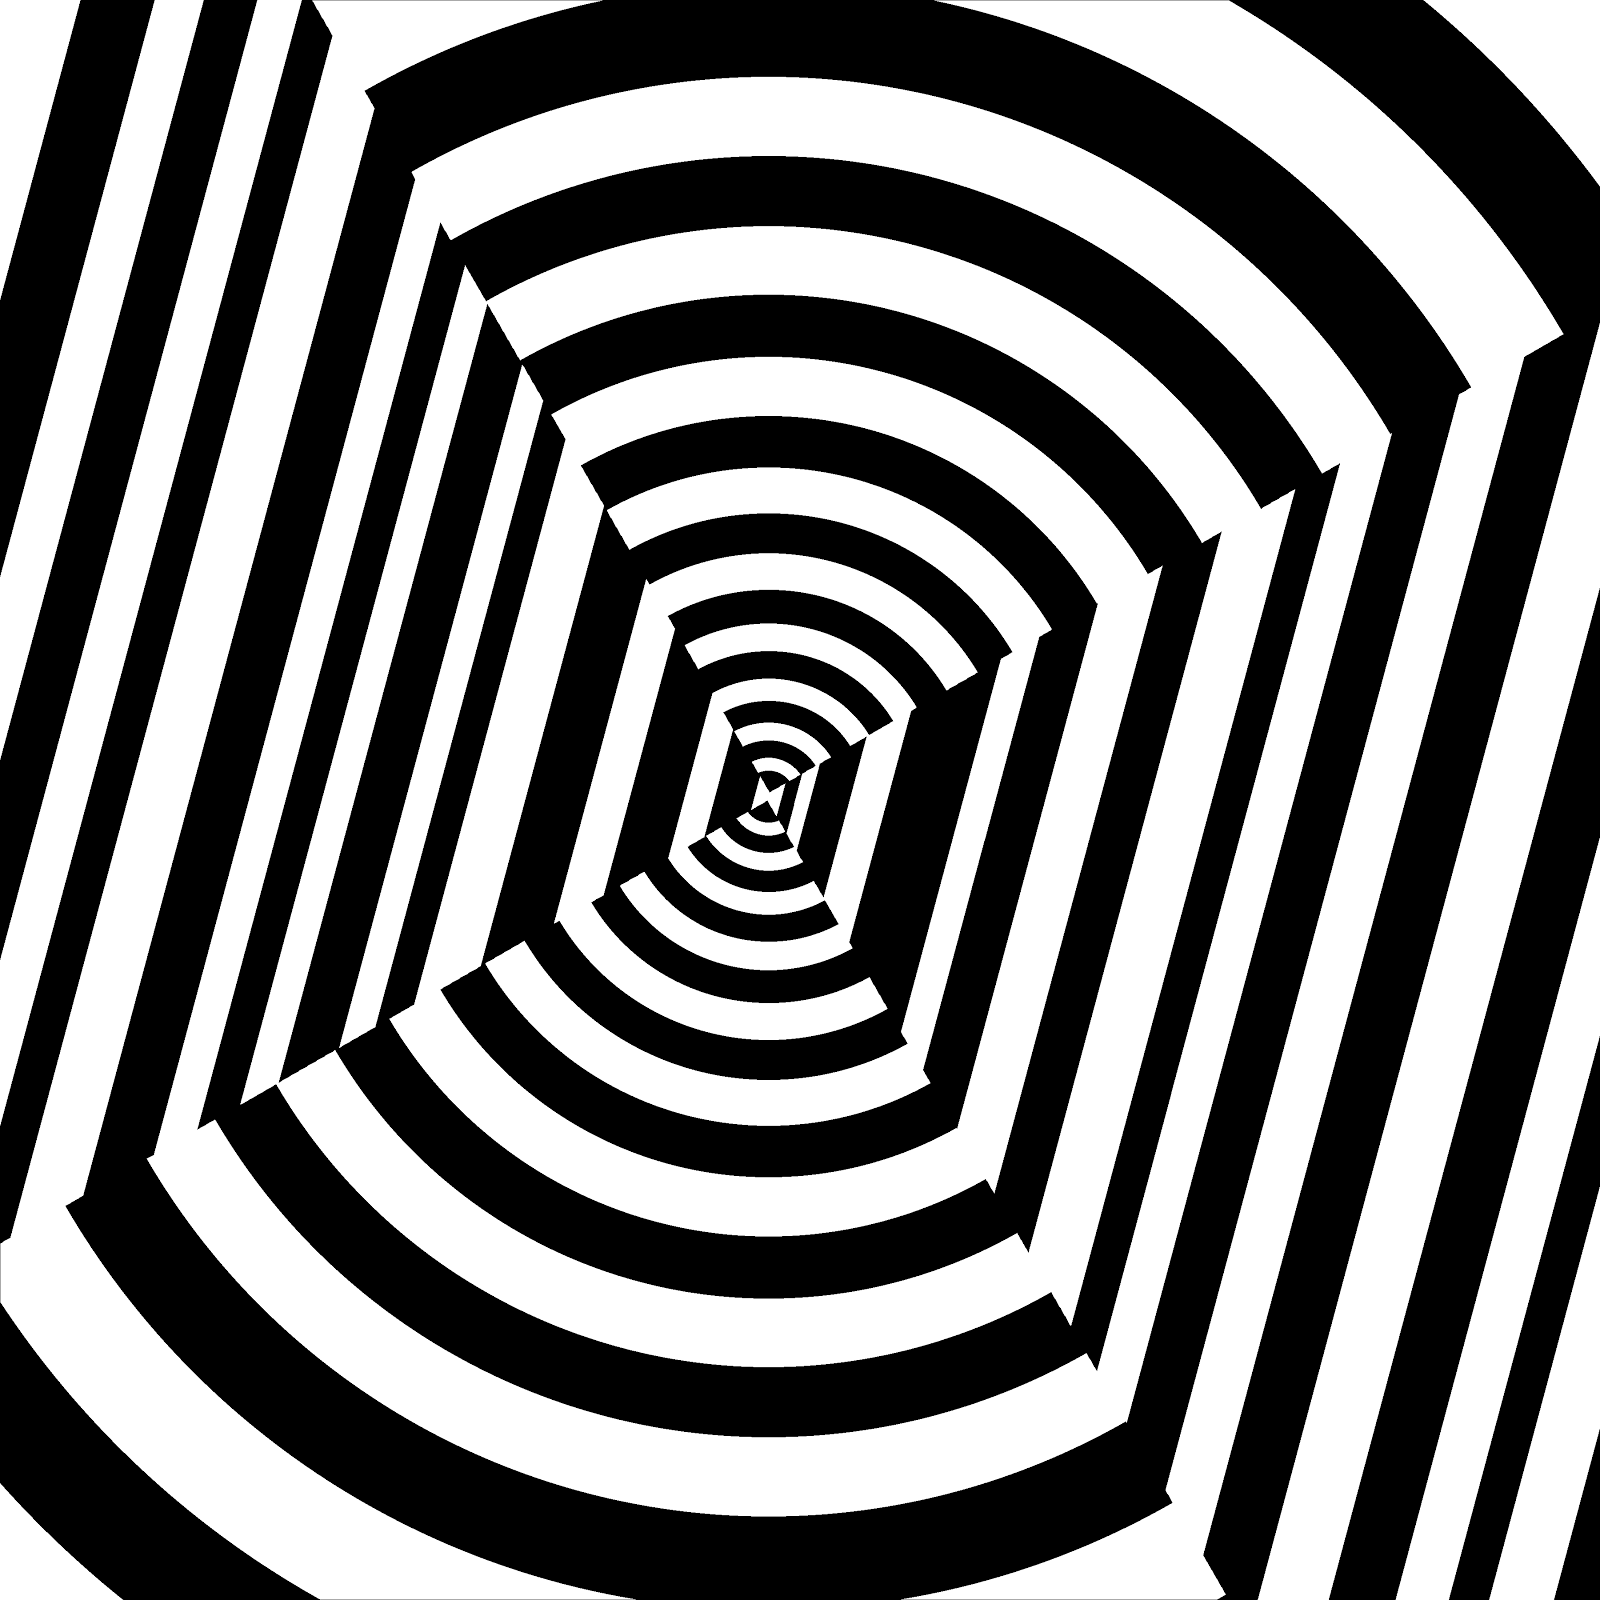 optical illusion illusions drawings iphone op simple drawing tunnel awesome paintings casino easy eye designs psychedelic freaking visual google